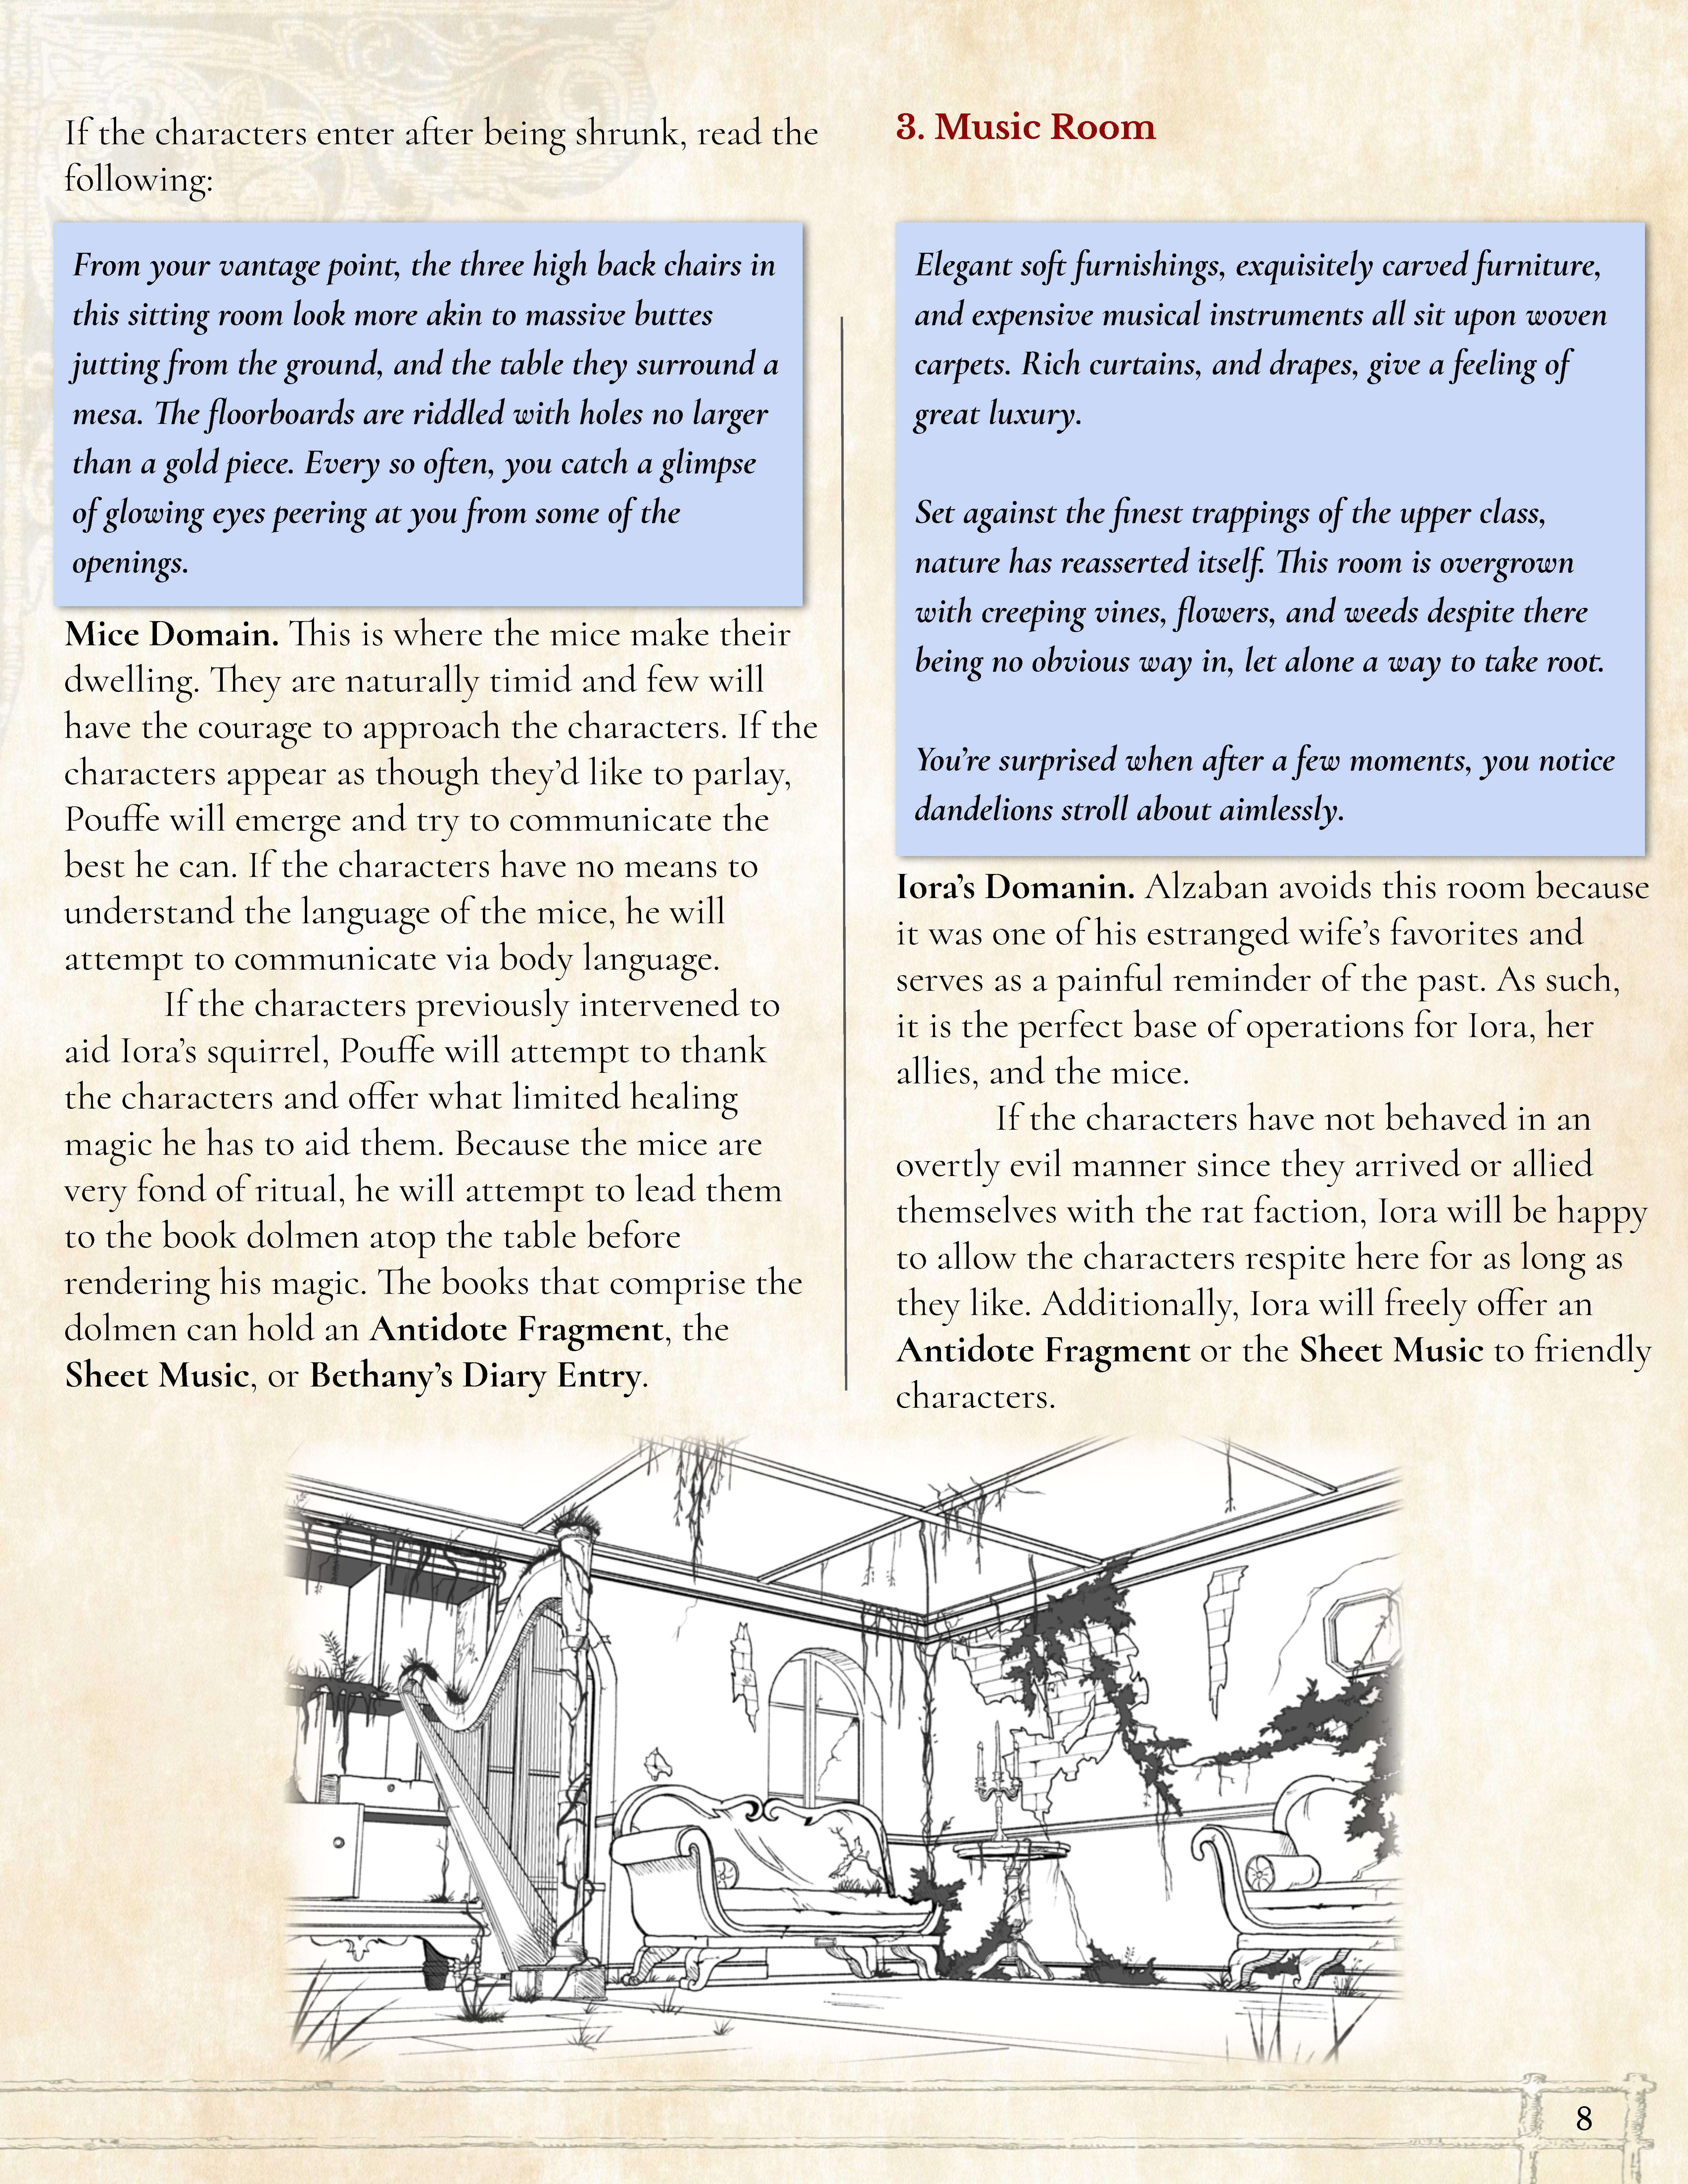 Preview of page 8 of Mansion of the Minimizing Mage